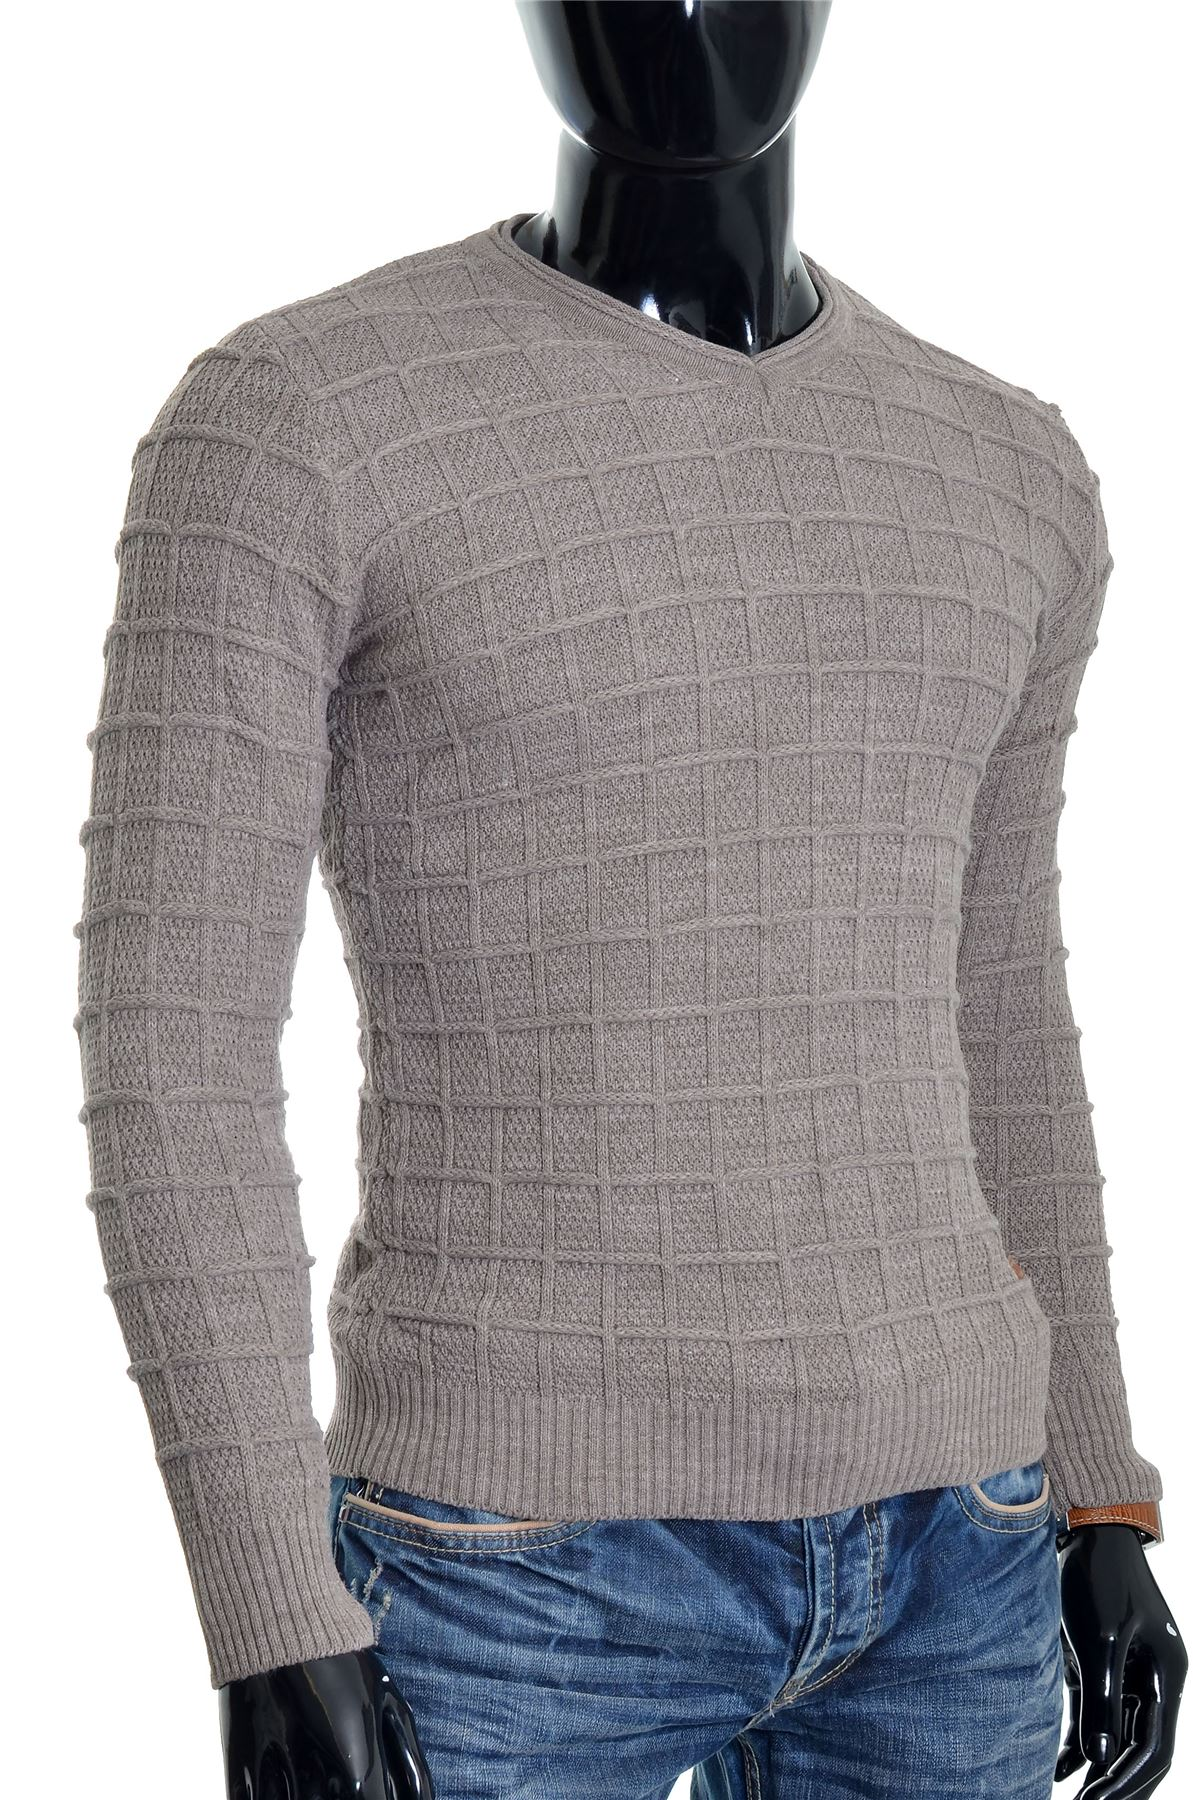 D-amp-R-Men-039-s-Wool-Jumper-Knit-Smart-Long-Sleeve-Sweater-Crew-Neck-Check-Top-Slim thumbnail 4